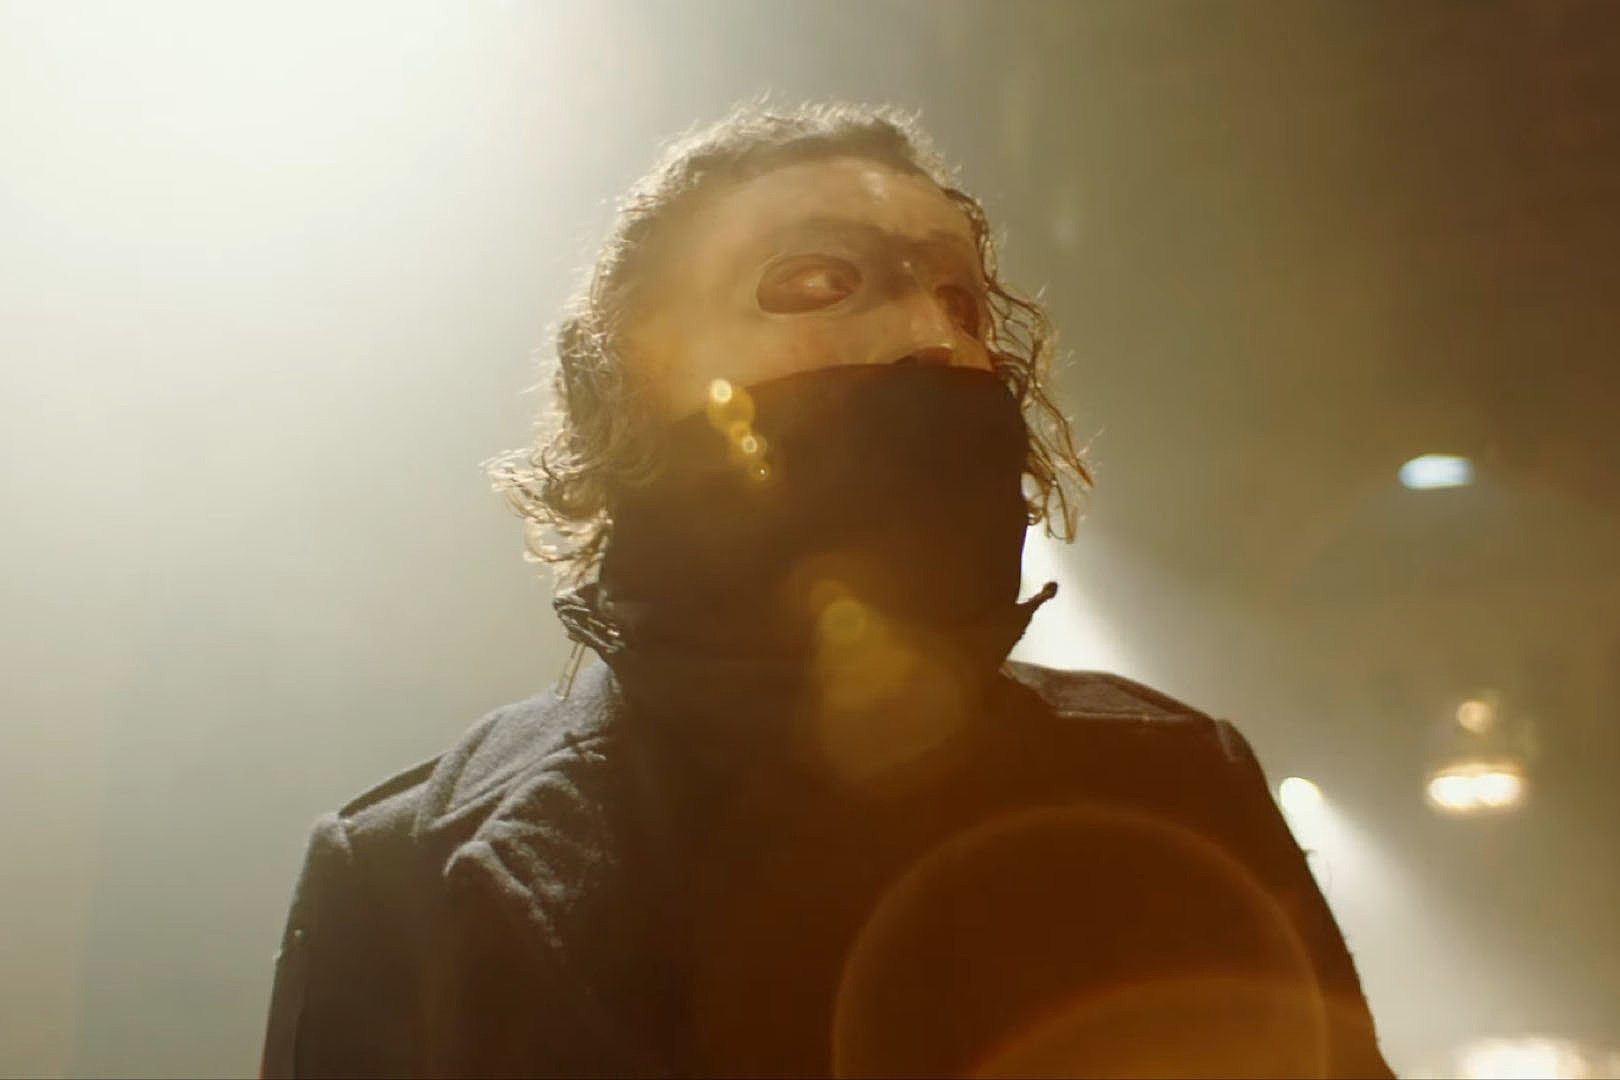 Here Are the Lyrics to Slipknot's New Song 'Unsainted'